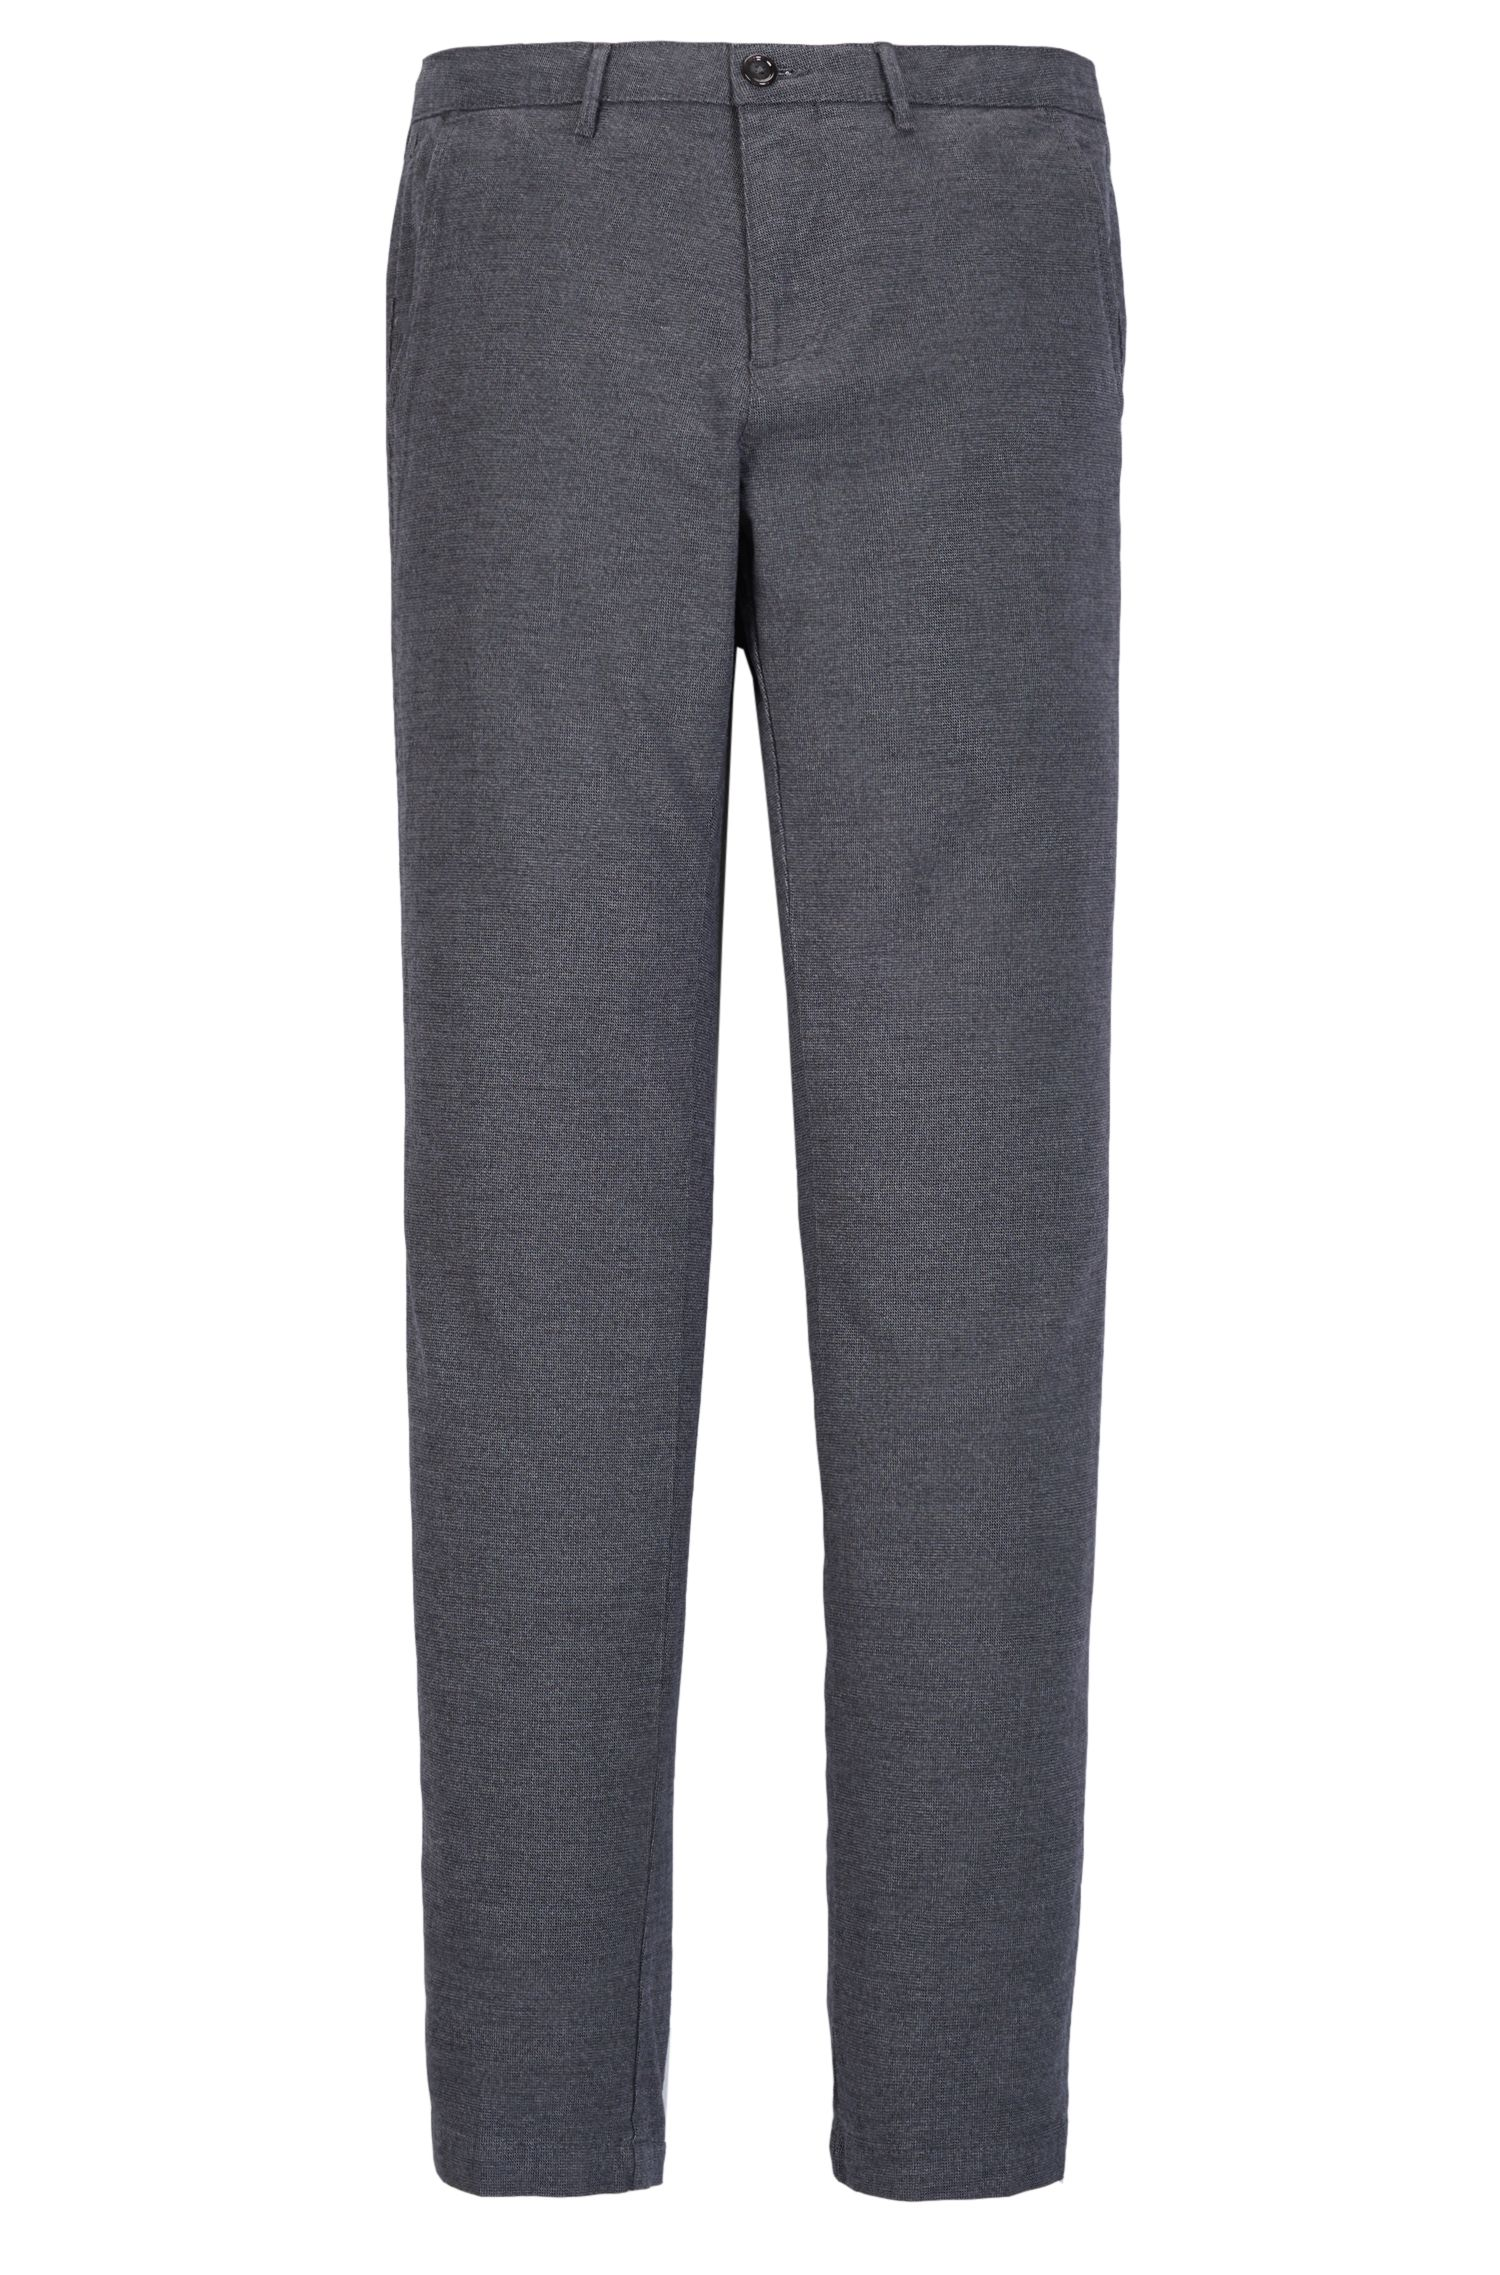 Patterned Stretch Cotton Pant, Regular Fit | Crigan W